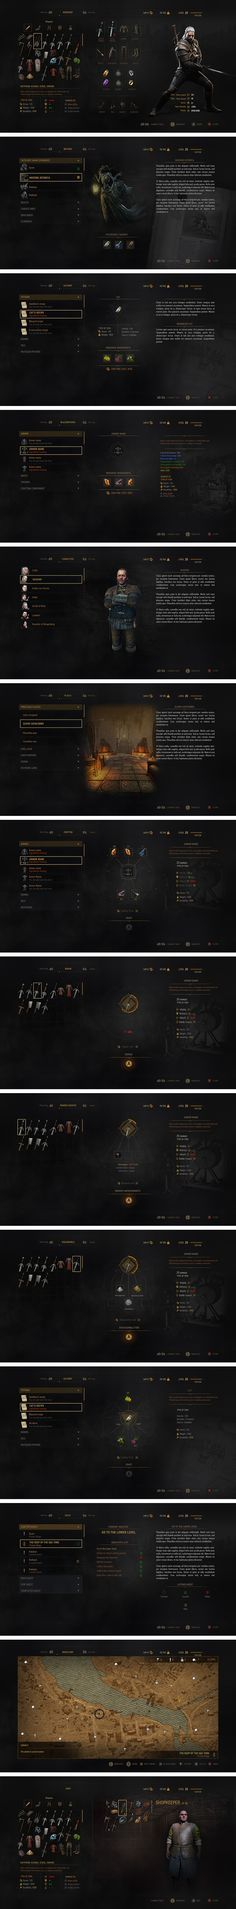 From April 2013 and over 2 1/2 years I worked as a UI ARTIST for the video game company CD PROJEKT RED in Warsaw - Poland, for the renowned and beautiful title THE WITCHER 3: THE WILD HUNT and as well for the title CYBERPUNK 2077. During this time I was in charge of designing graphic mockups for the UI, designing assets, backgrounds, symbols and icons for implementation in the game. The long design process of the interface for THE WITCHER 3 changed at least five different times, each of ...